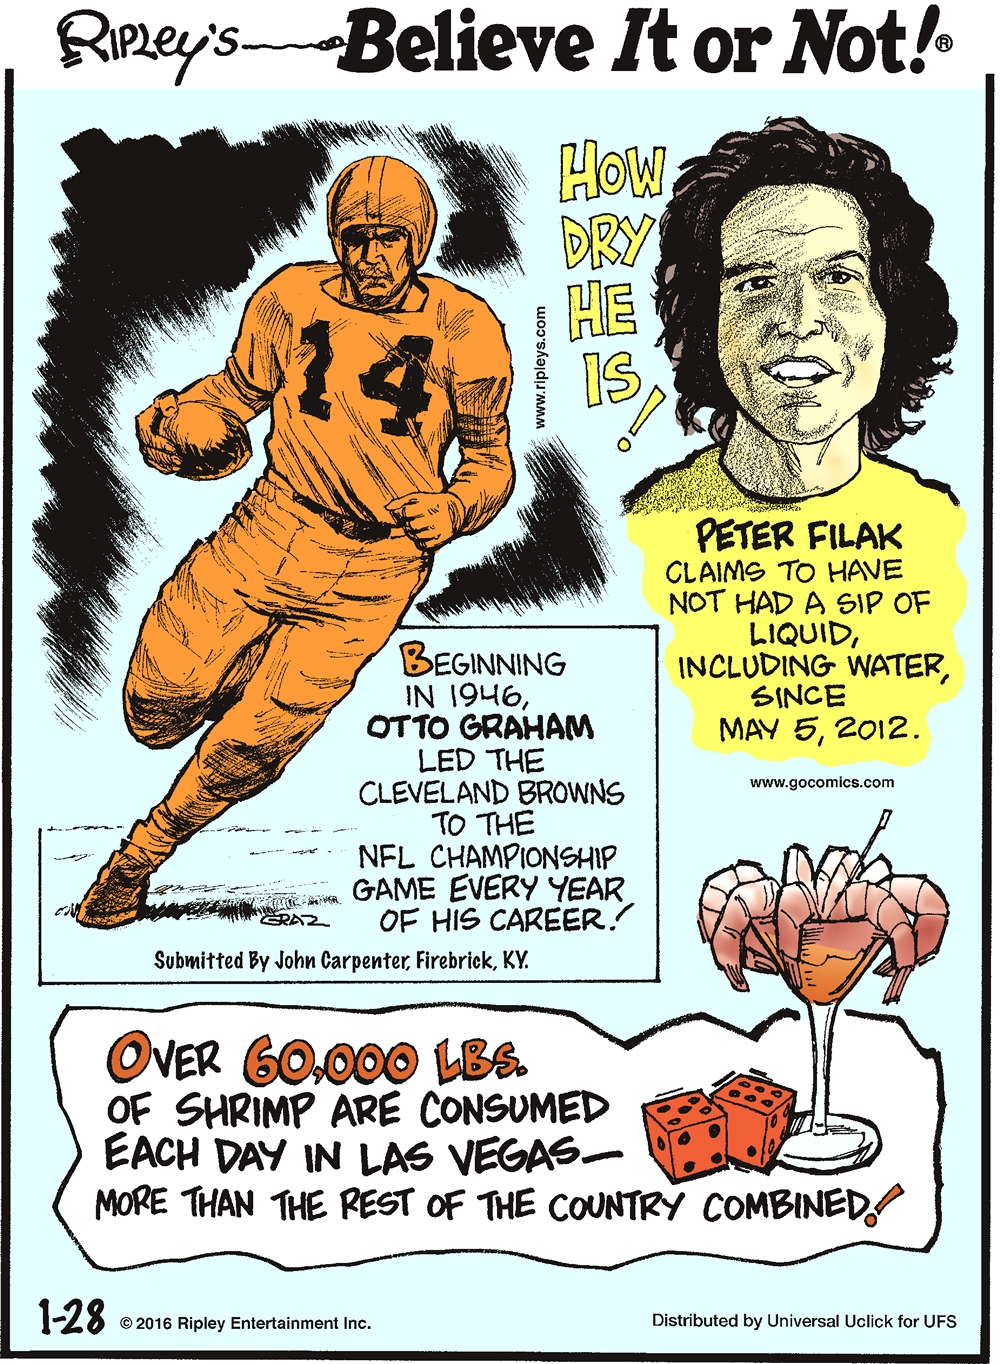 How dry he is! Peter Filak claims to have not had a sip of liquid, including water, since May 5, 2012. -------------------- Beginning in 1946, Otto Graham led the Cleveland Browns to the NFL championships every year of his career! Submitted by John Carpenter, Firebrick, KY. -------------------- Over 60,000 lbs of shrimp are consumed each day in Las Vegas—more than the rest of the country combined!